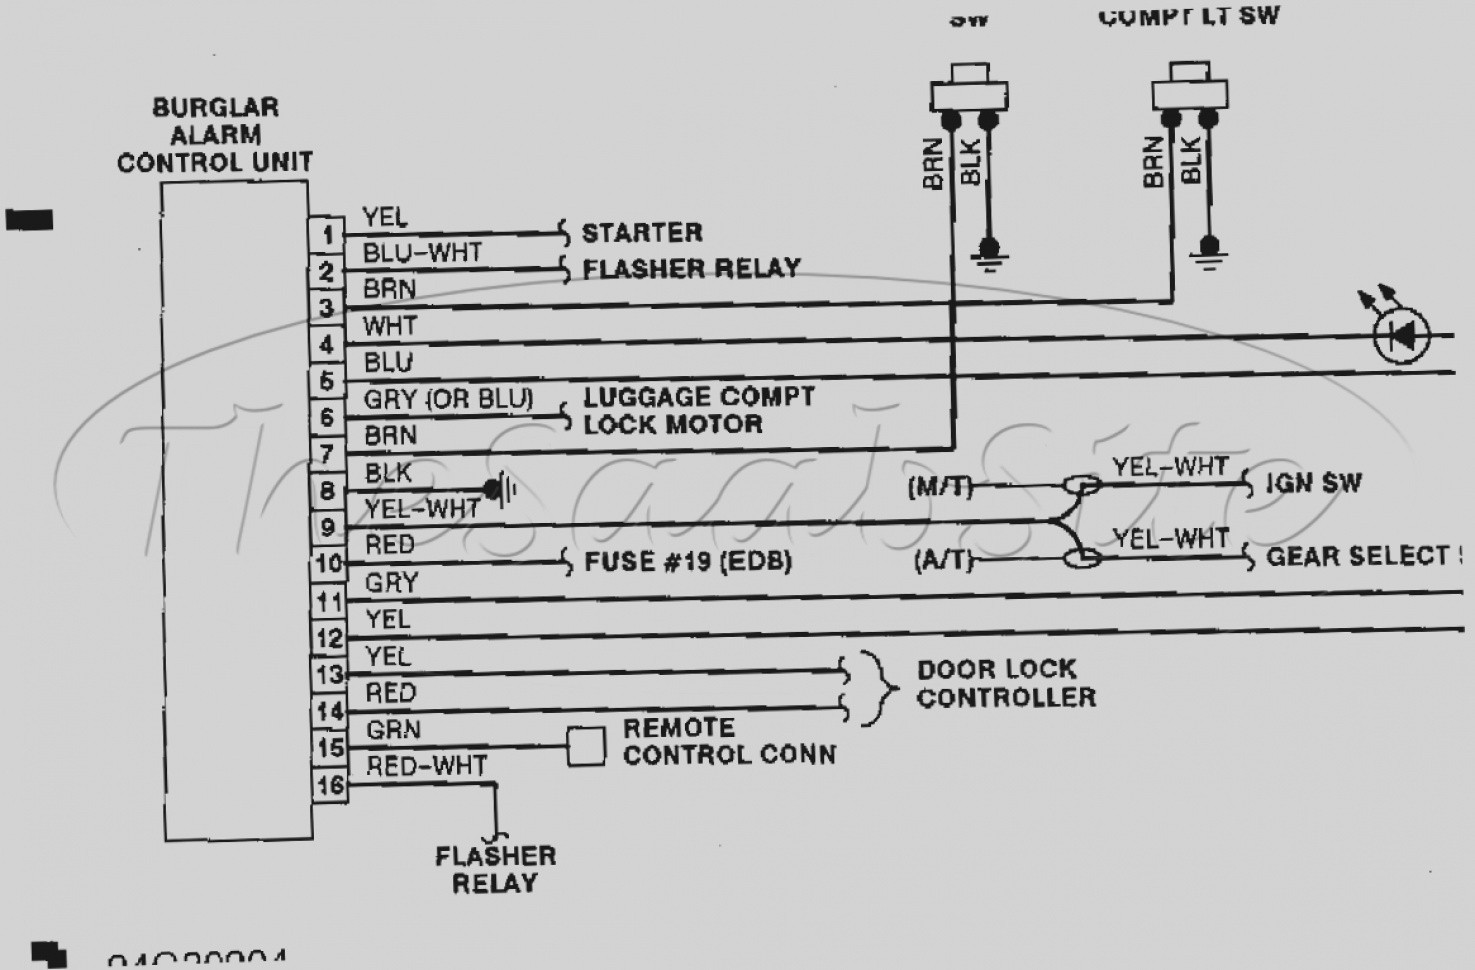 Whelen 500 Series Wiring Diagram - 07 Dodge Pickup Radio Wiring for Wiring  Diagram SchematicsWiring Diagram Schematics